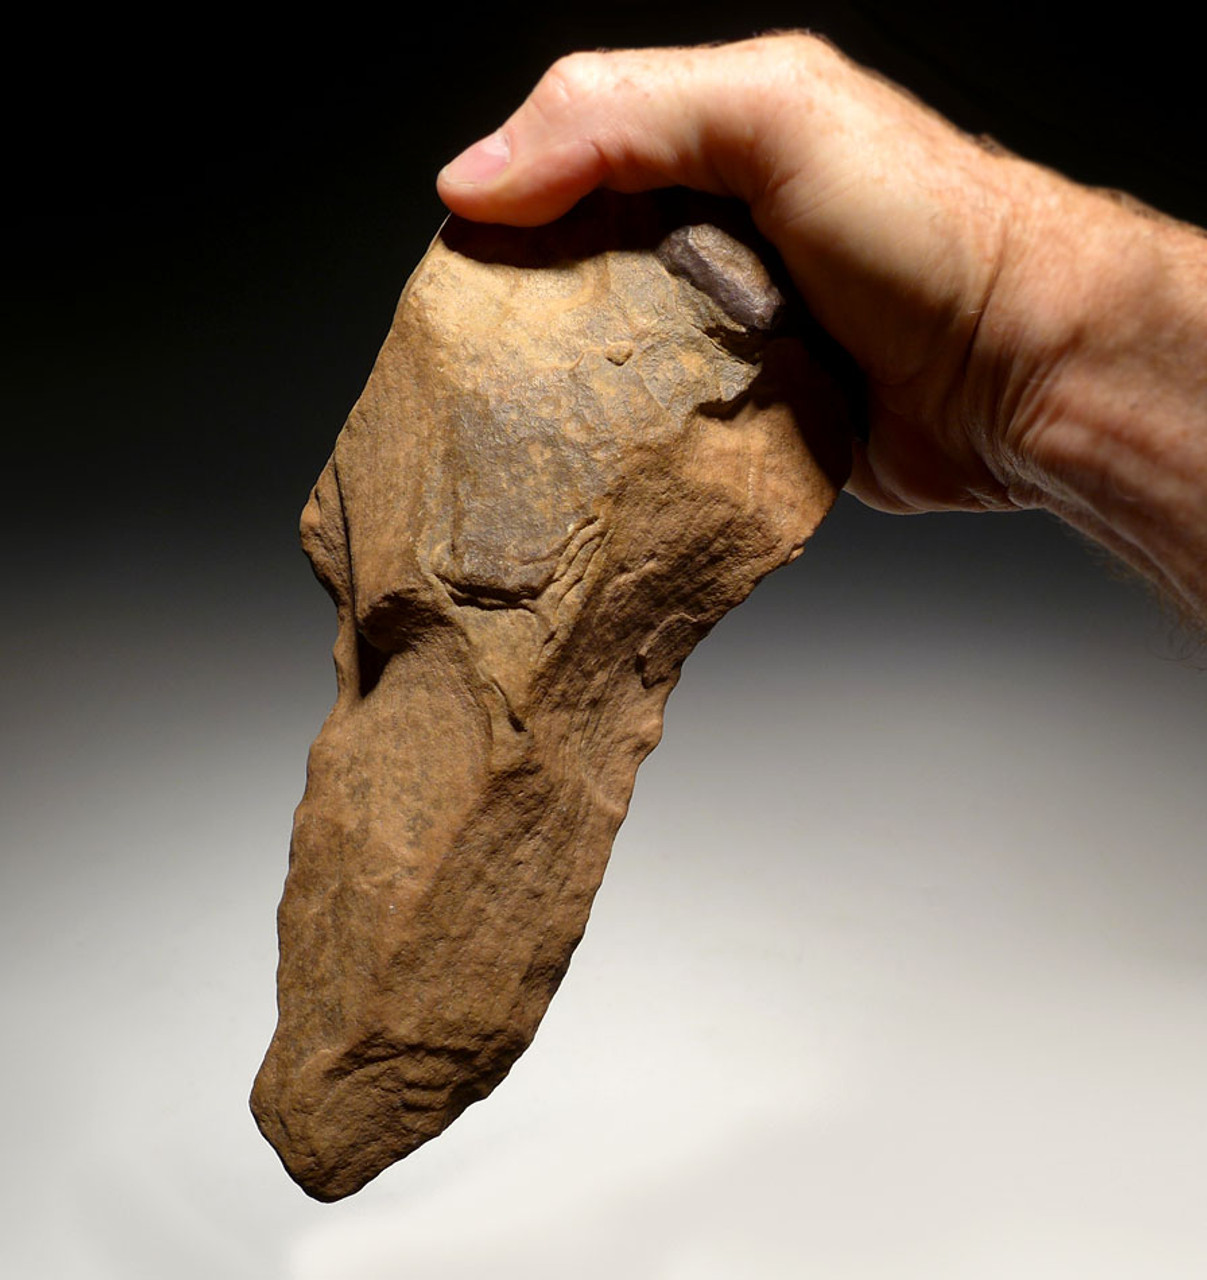 LARGE BONE-SMASHING PRESTIGE ACHEULEAN STONE PICK HAND AXE MADE BY HOMO ERECTUS (ERGASTER) WITH UNUSUAL GRIP FEATURE *ACH226